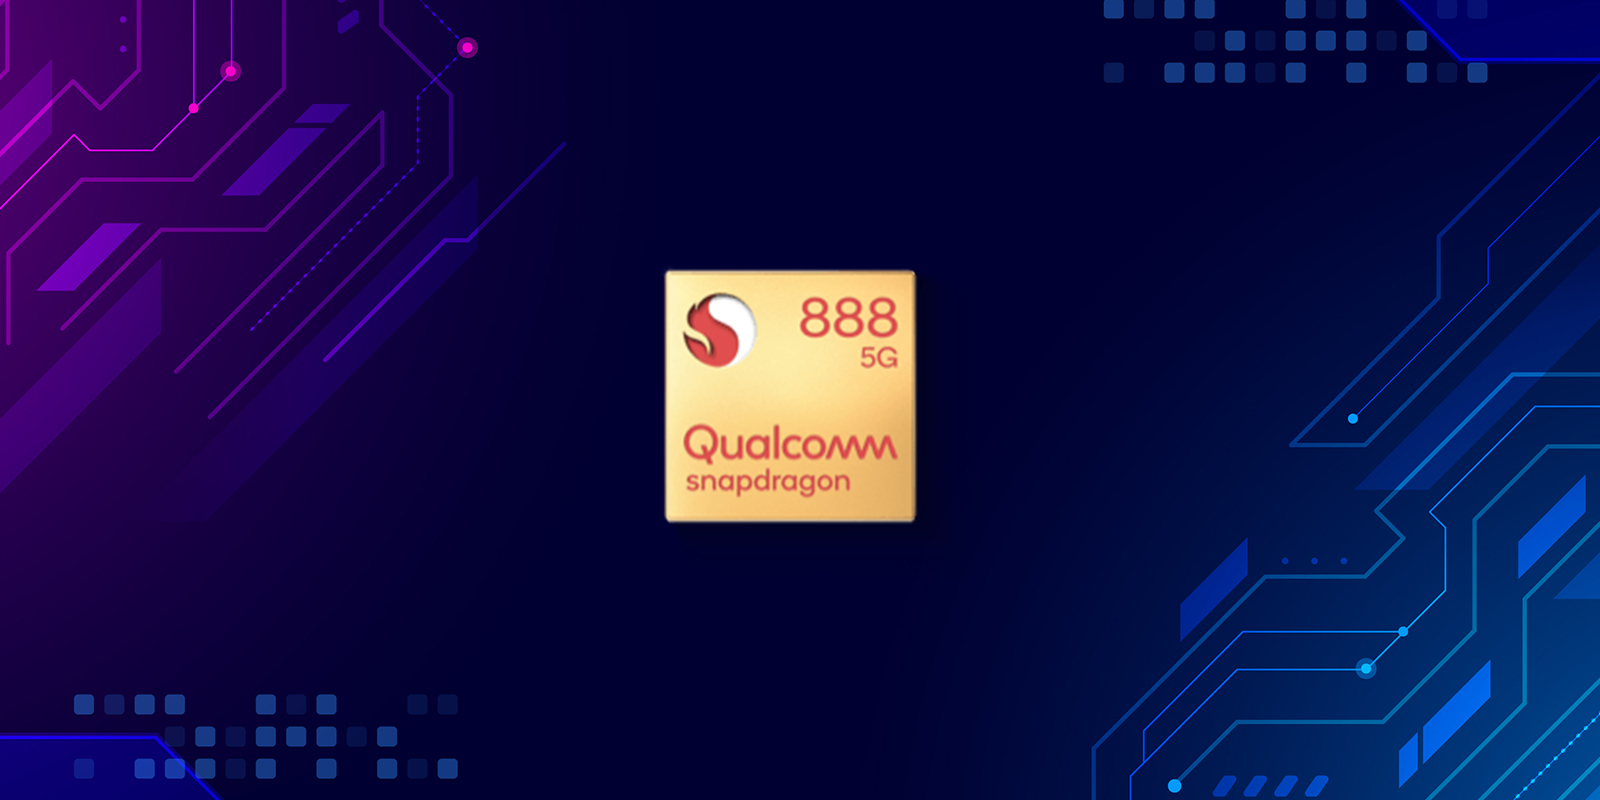 Snapdragon 888 Unveiled With its Powerful Performance and 5G Feature